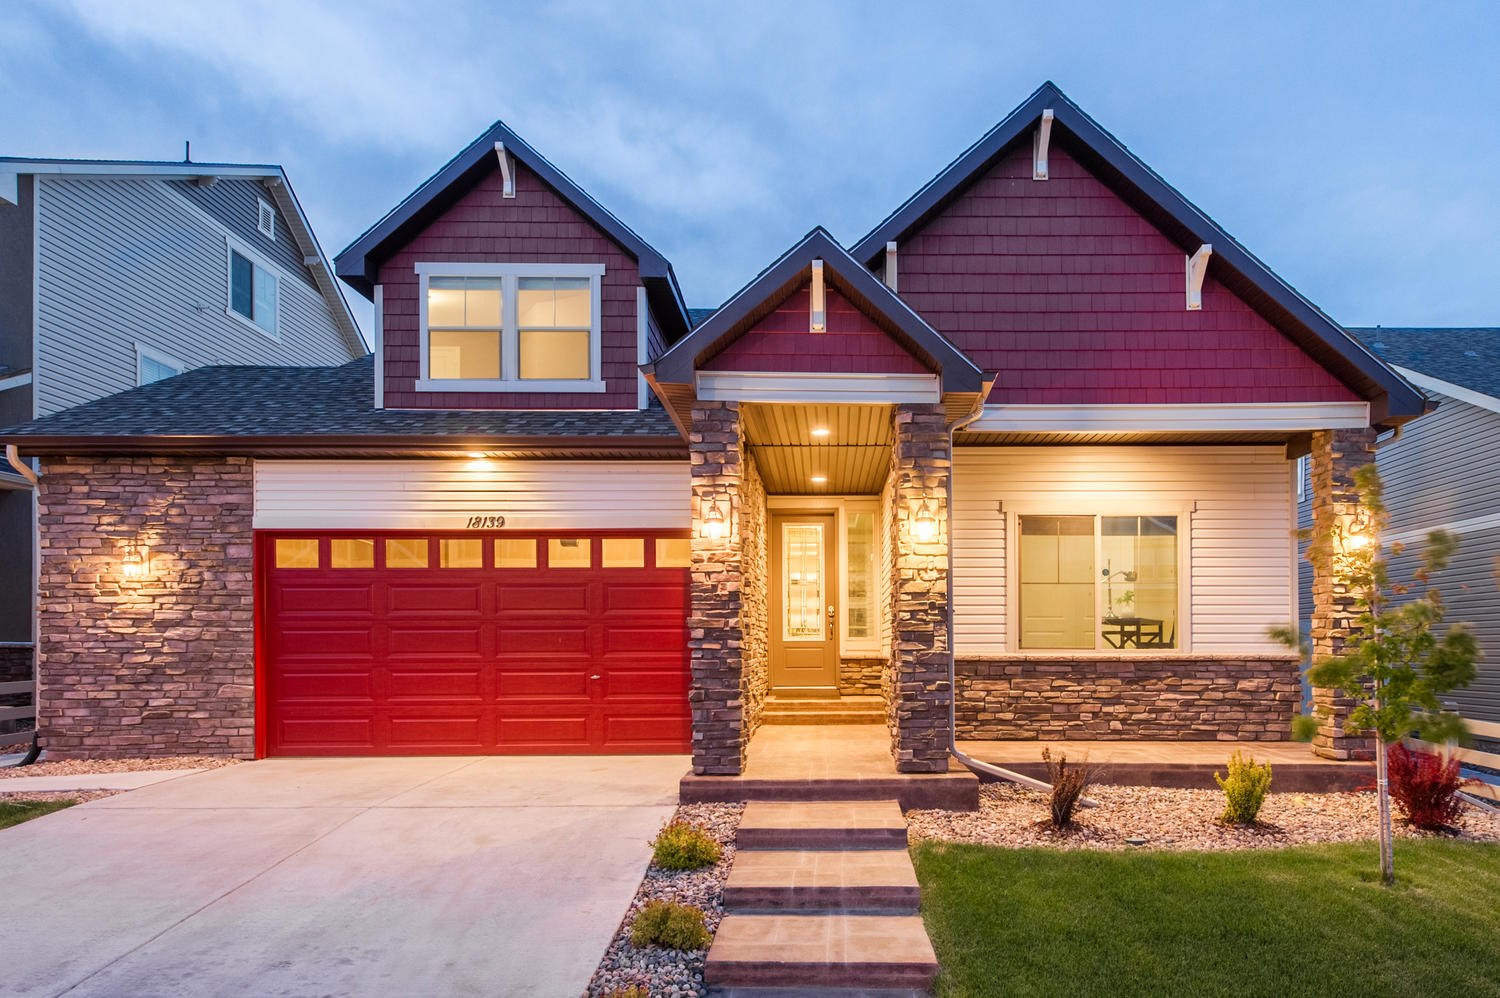 Single Family Home for Sale at Main Floor Master Living at its Finest 18139 East 47th Place Green Valley Ranch, Denver, Colorado, 80249 United States